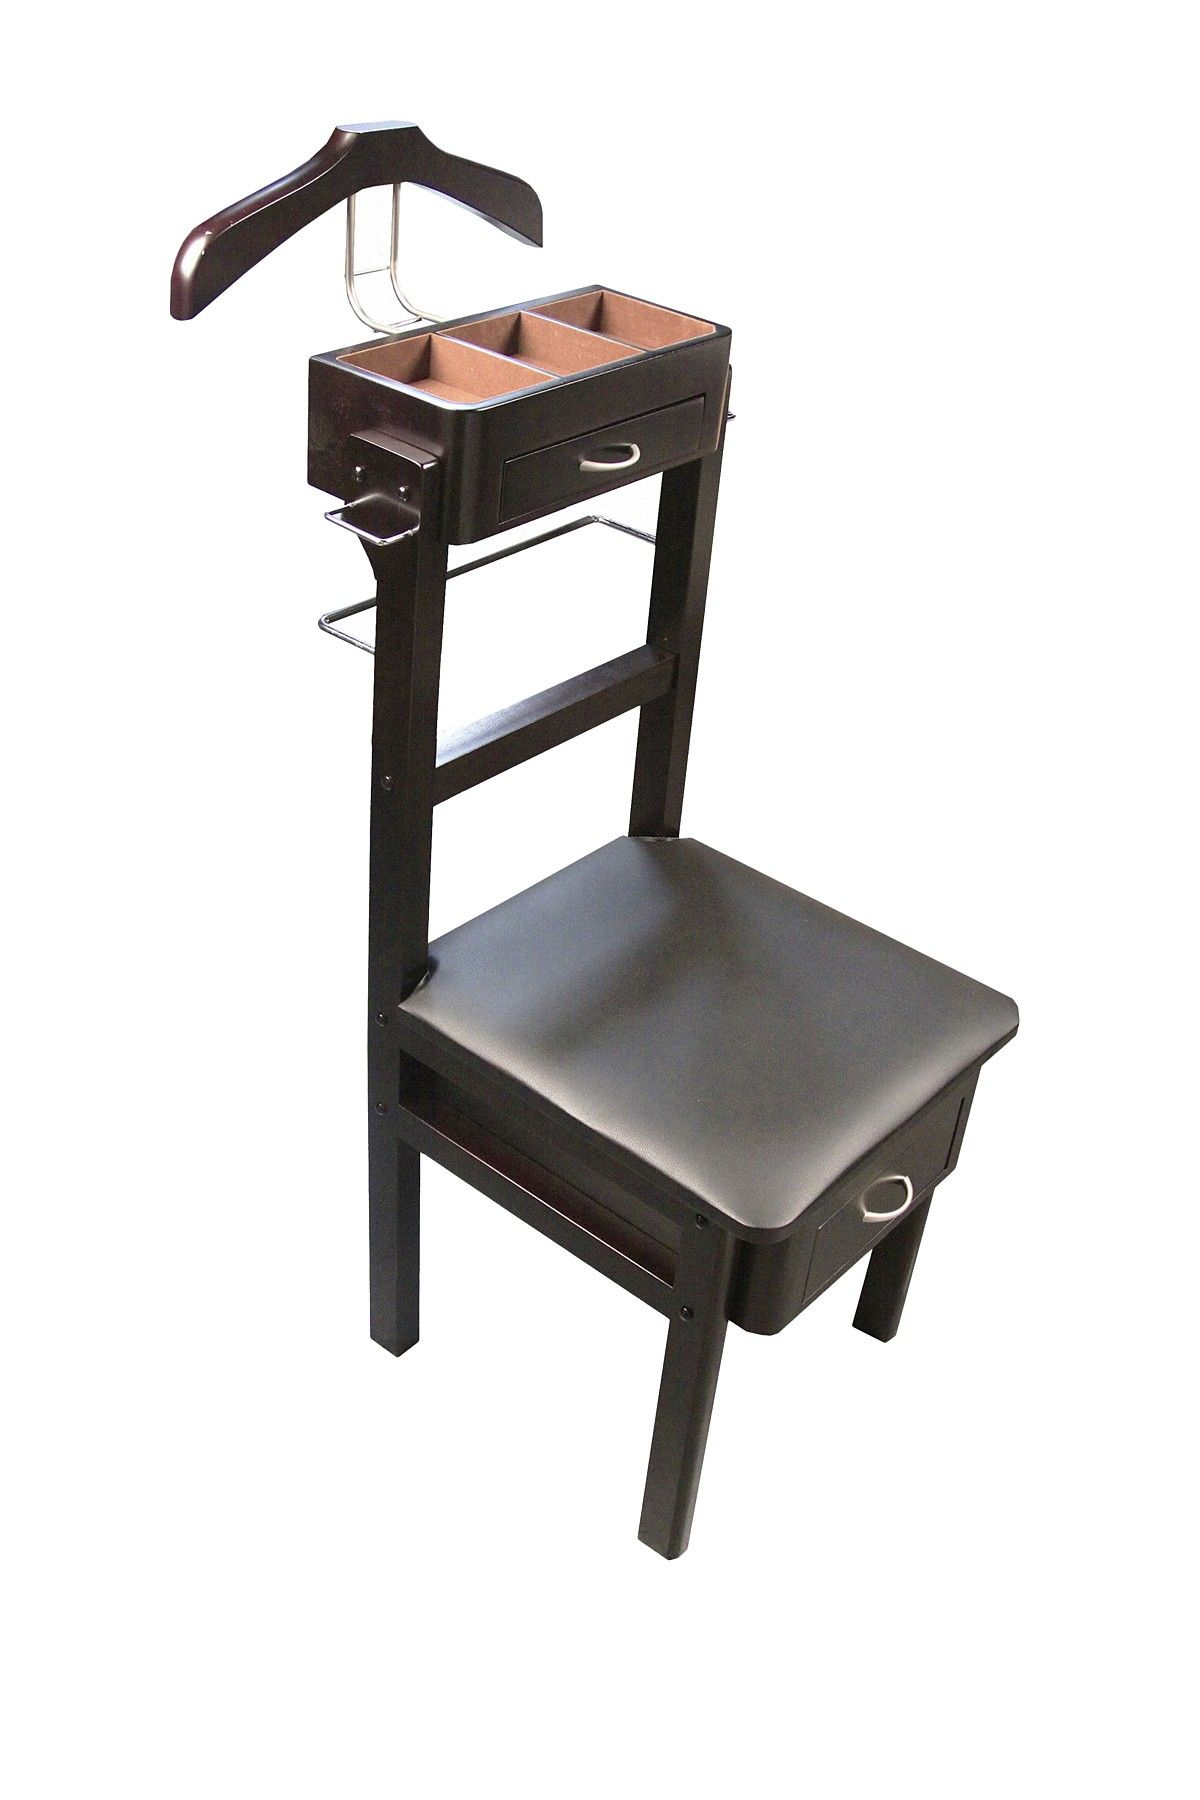 Bedroom Wardrobe Chair Valet Side With Arms Really Would Like To Try And Make This For My Hubby Using A Nice Ld